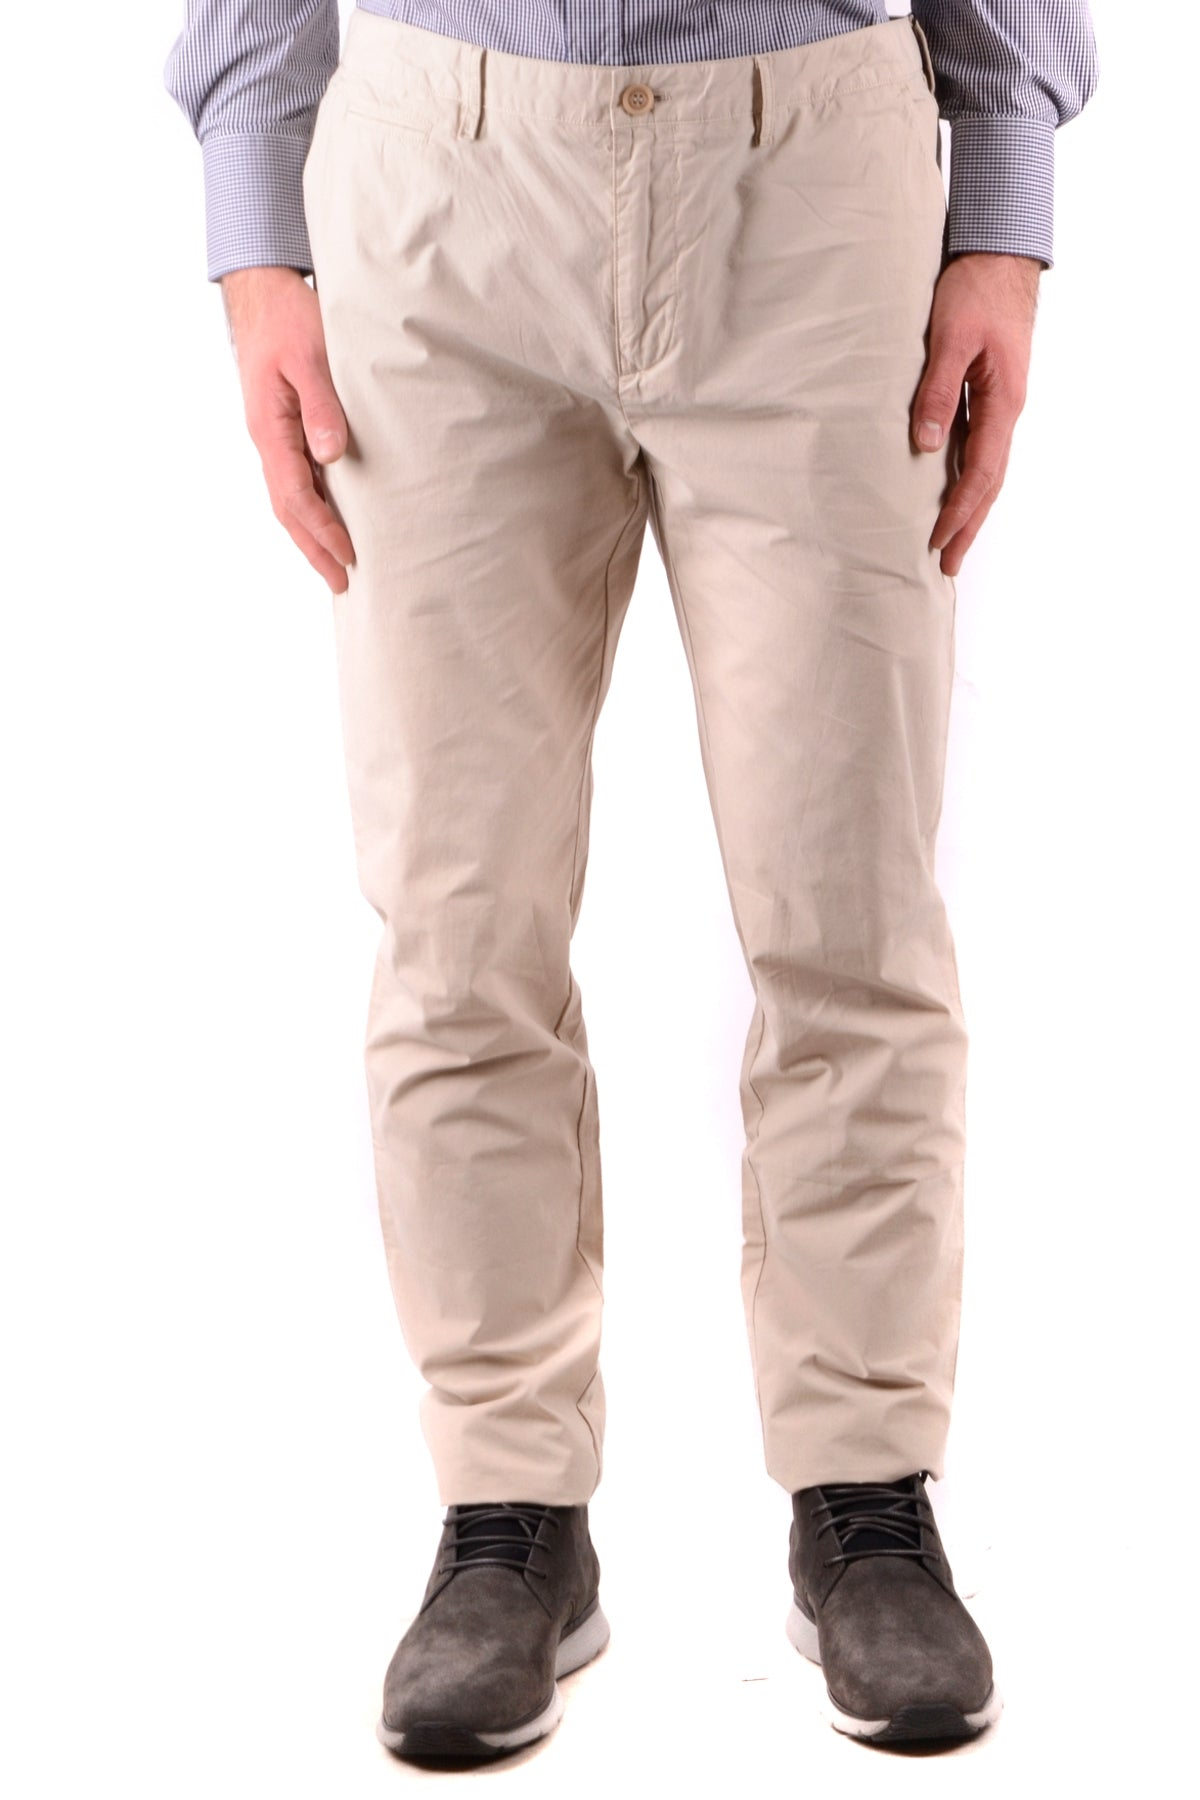 Trousers Burberry-Trousers - MAN-31-Product Details Season: Spring / SummerTerms: New With LabelMain Color: BeigeGender: ManMade In: ThailandManufacturer Part Number: 4011597 1010Size: UsYear: 2018Clothing Type: TrousersComposition: Cotton 100%-Keyomi-Sook